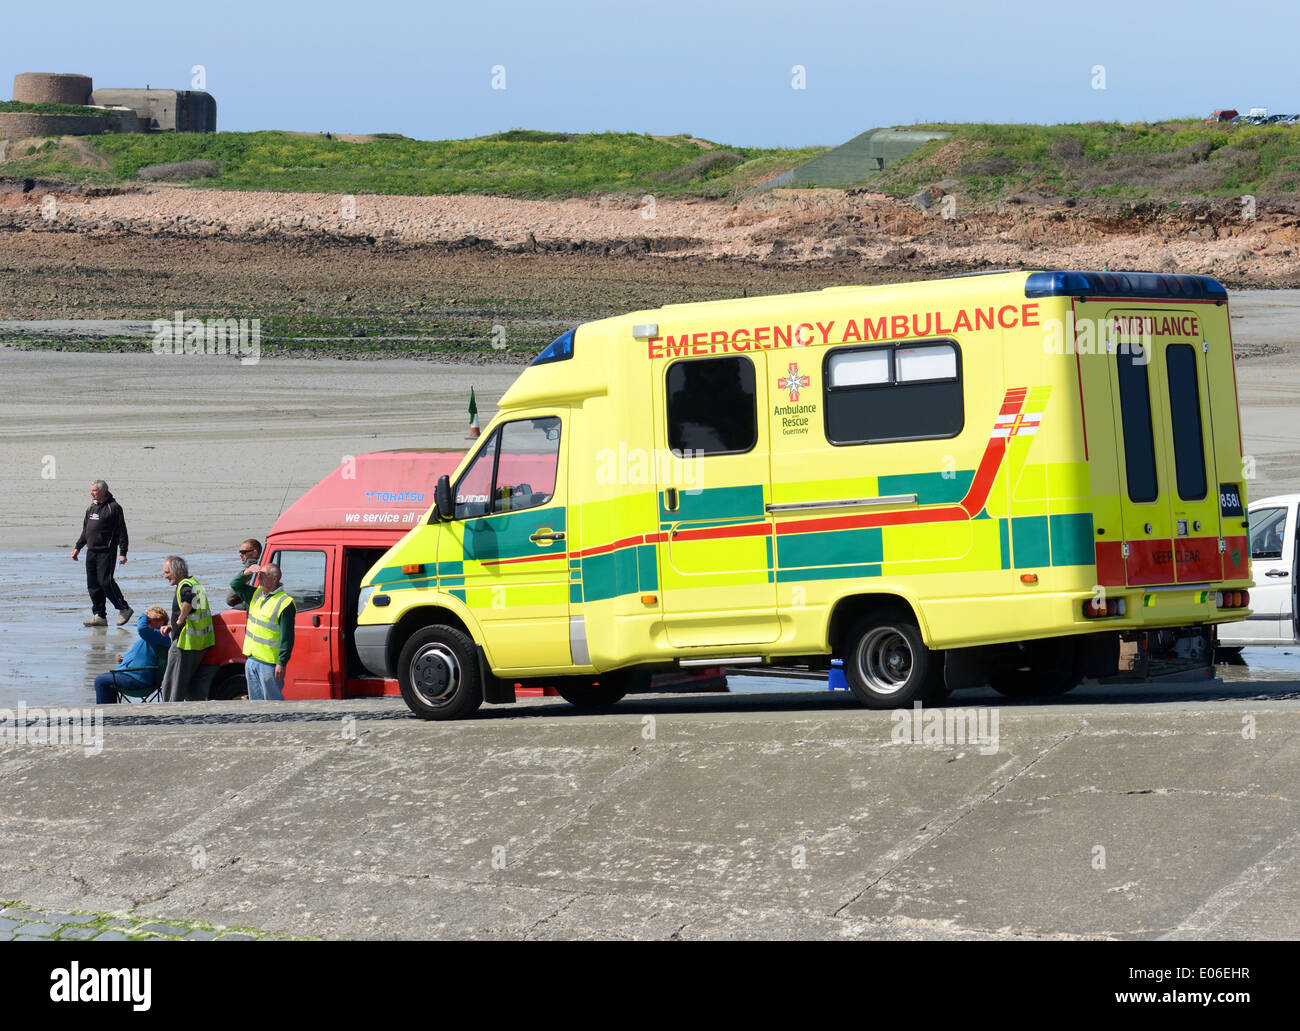 St. Johns ambulance on stand-by duty - Stock Image